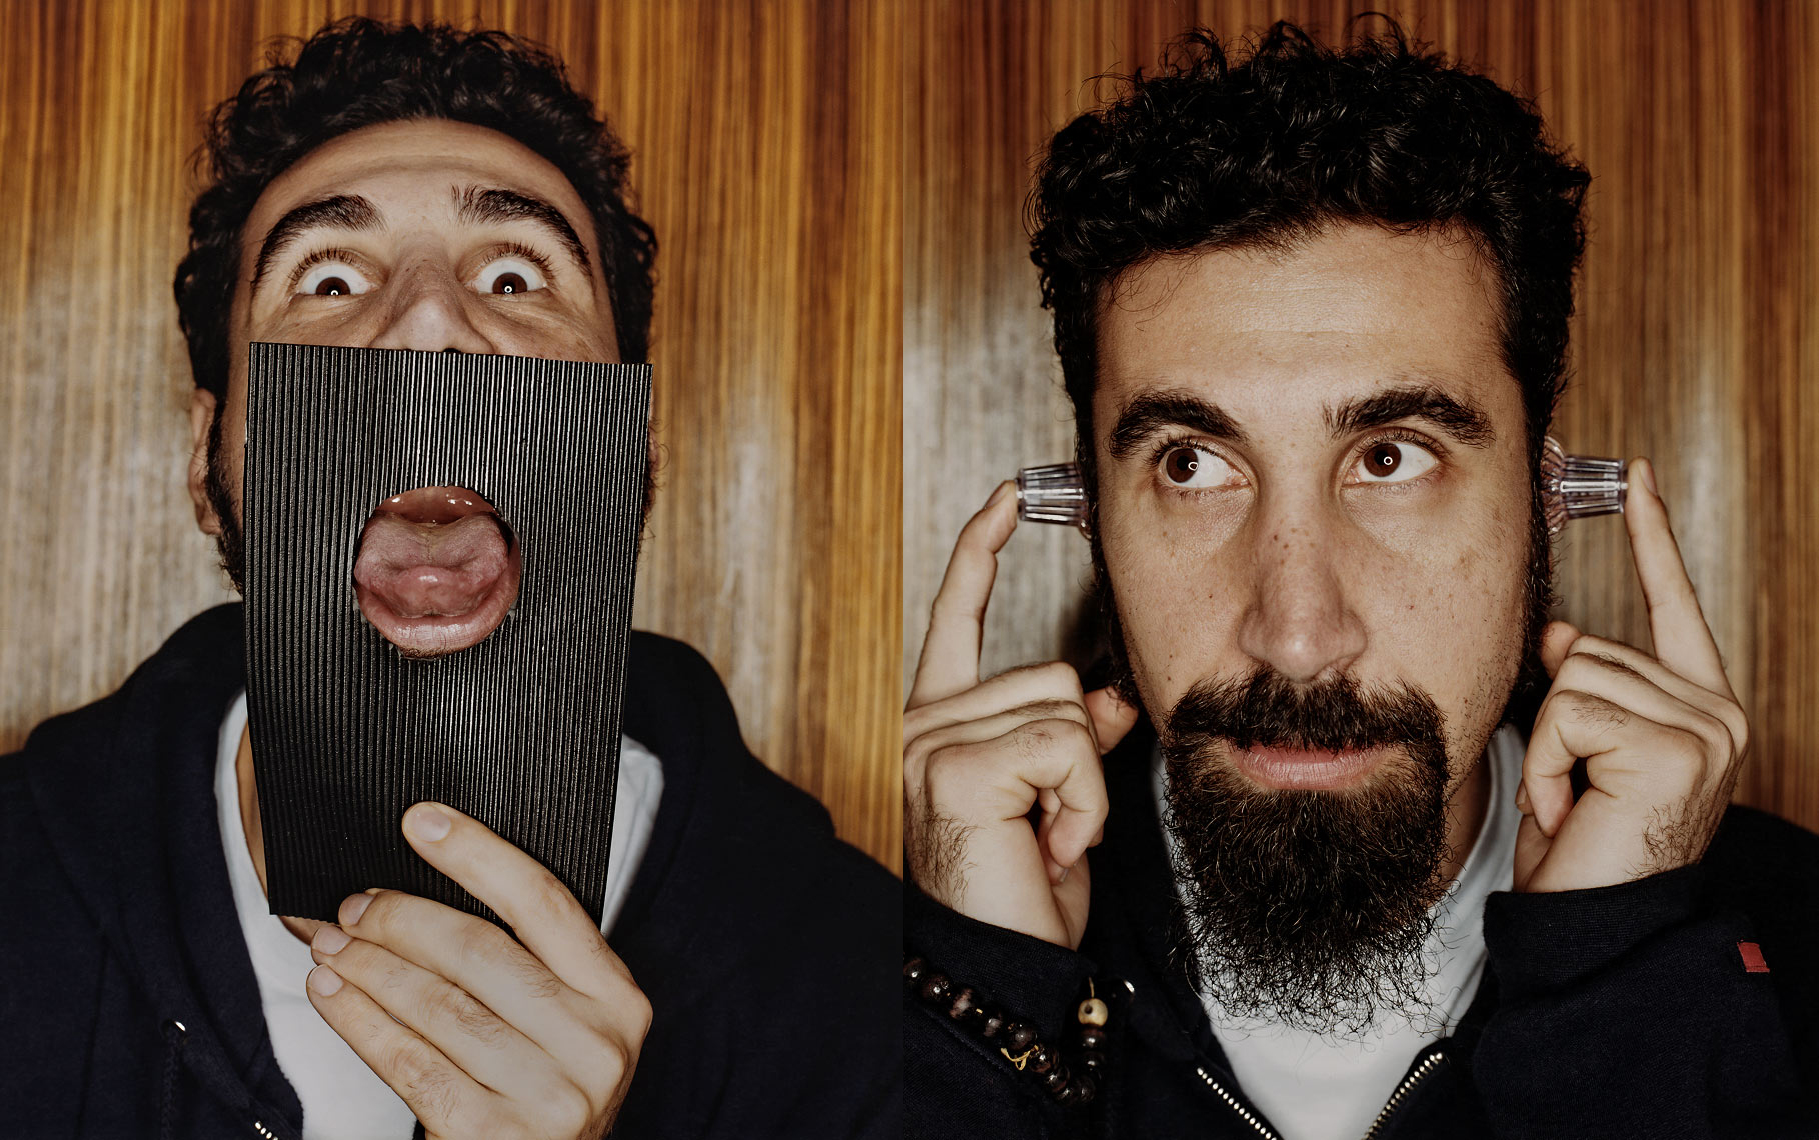 Serj tankian2 for website